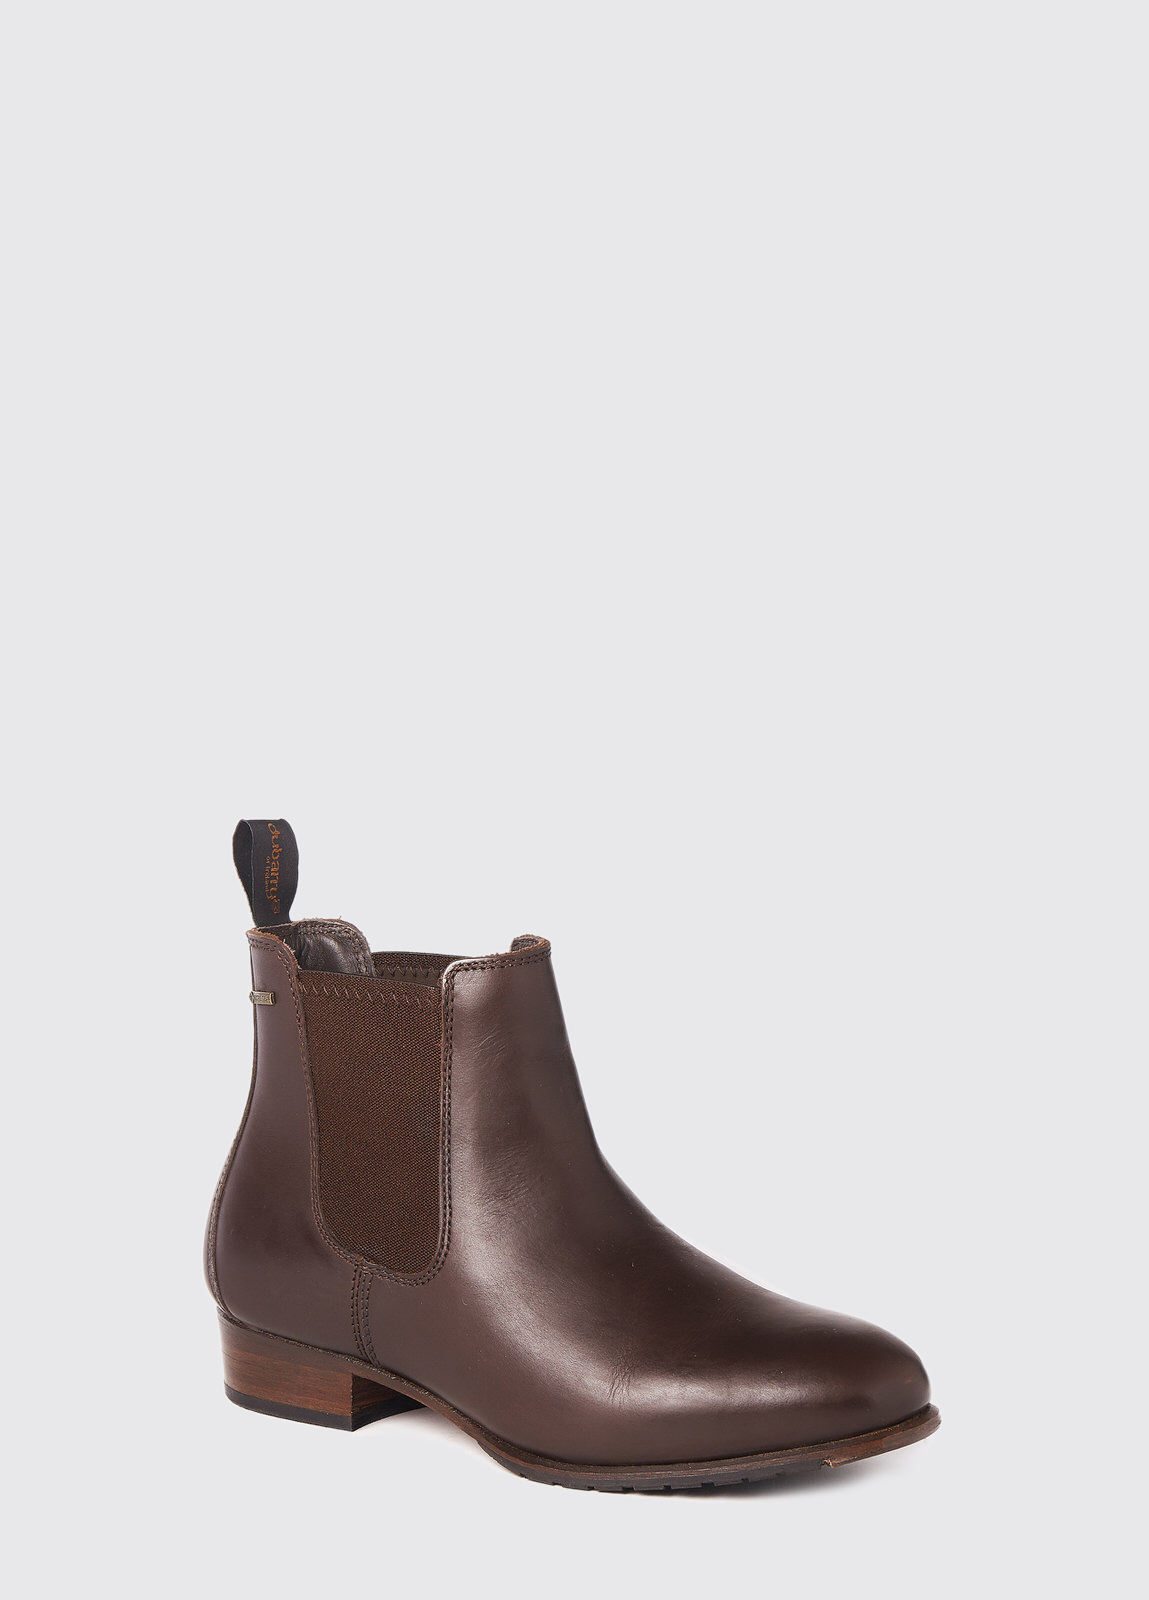 Cork Leather Soled Boot - Mahogany